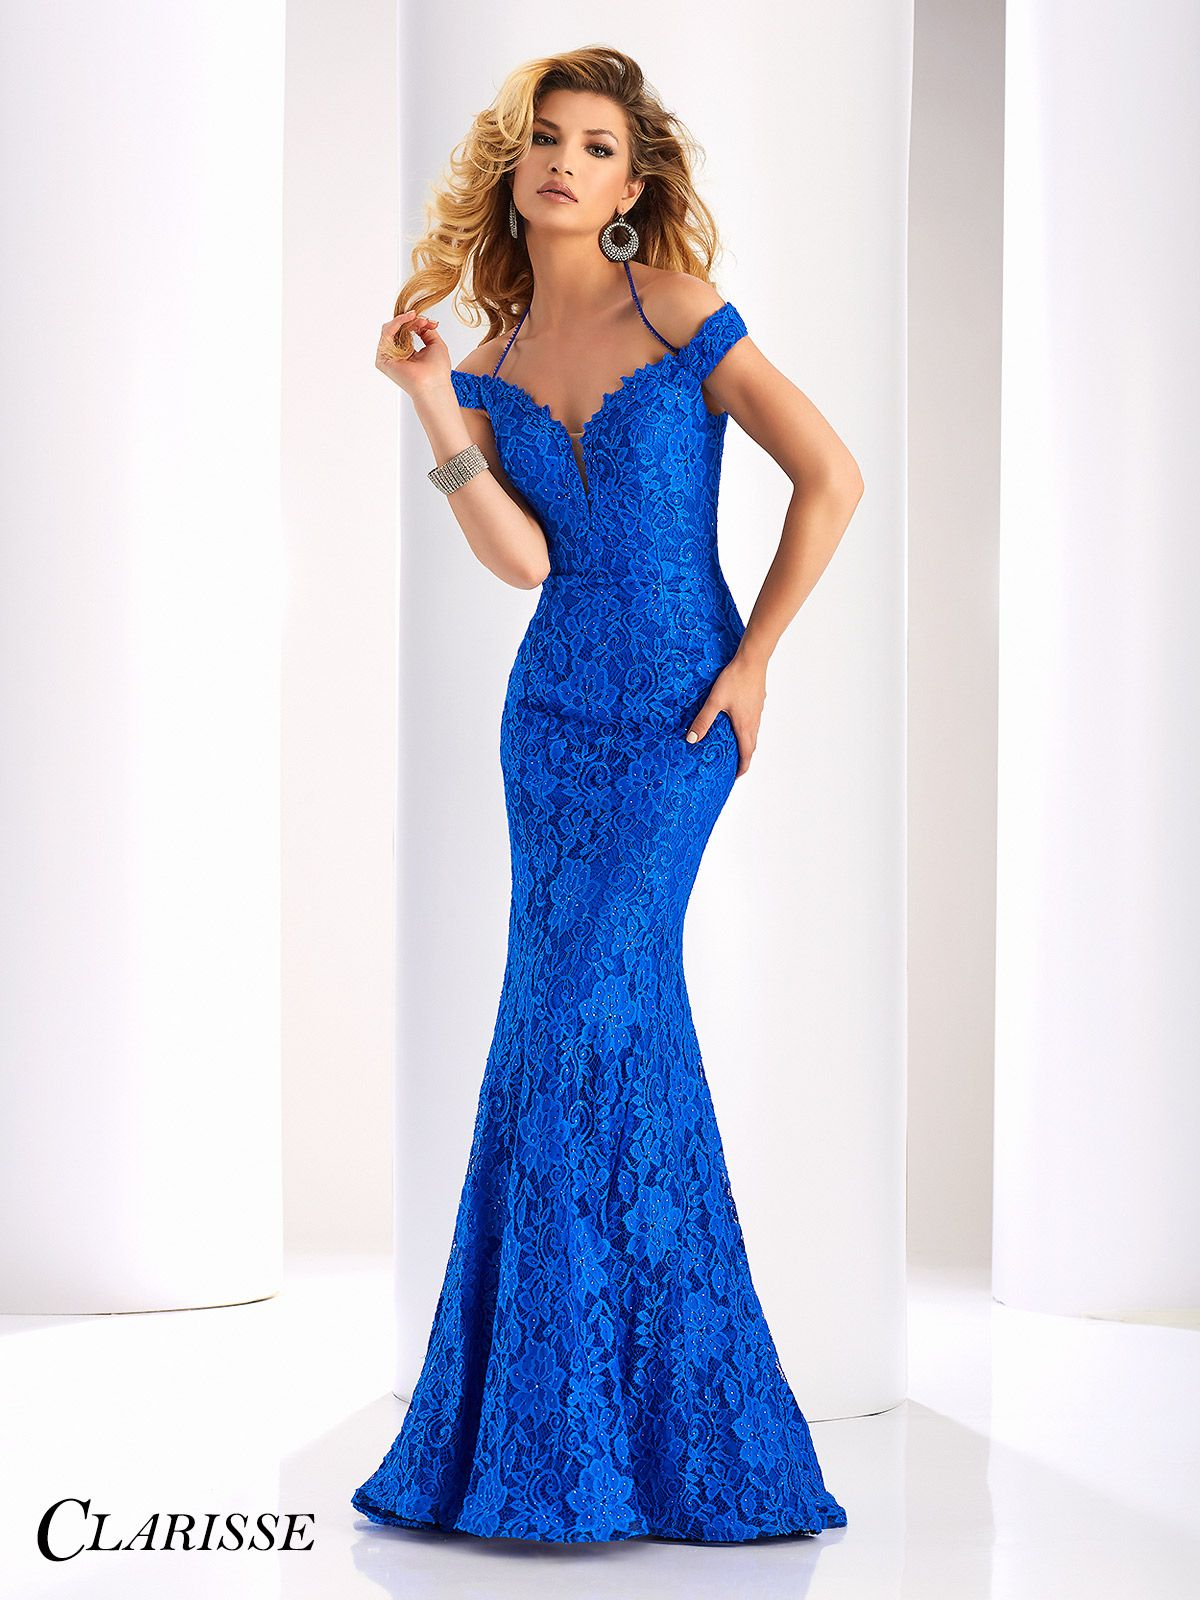 Clarisse Couture Lace Evening Gown 4801 | Lace, Ball dresses and ...